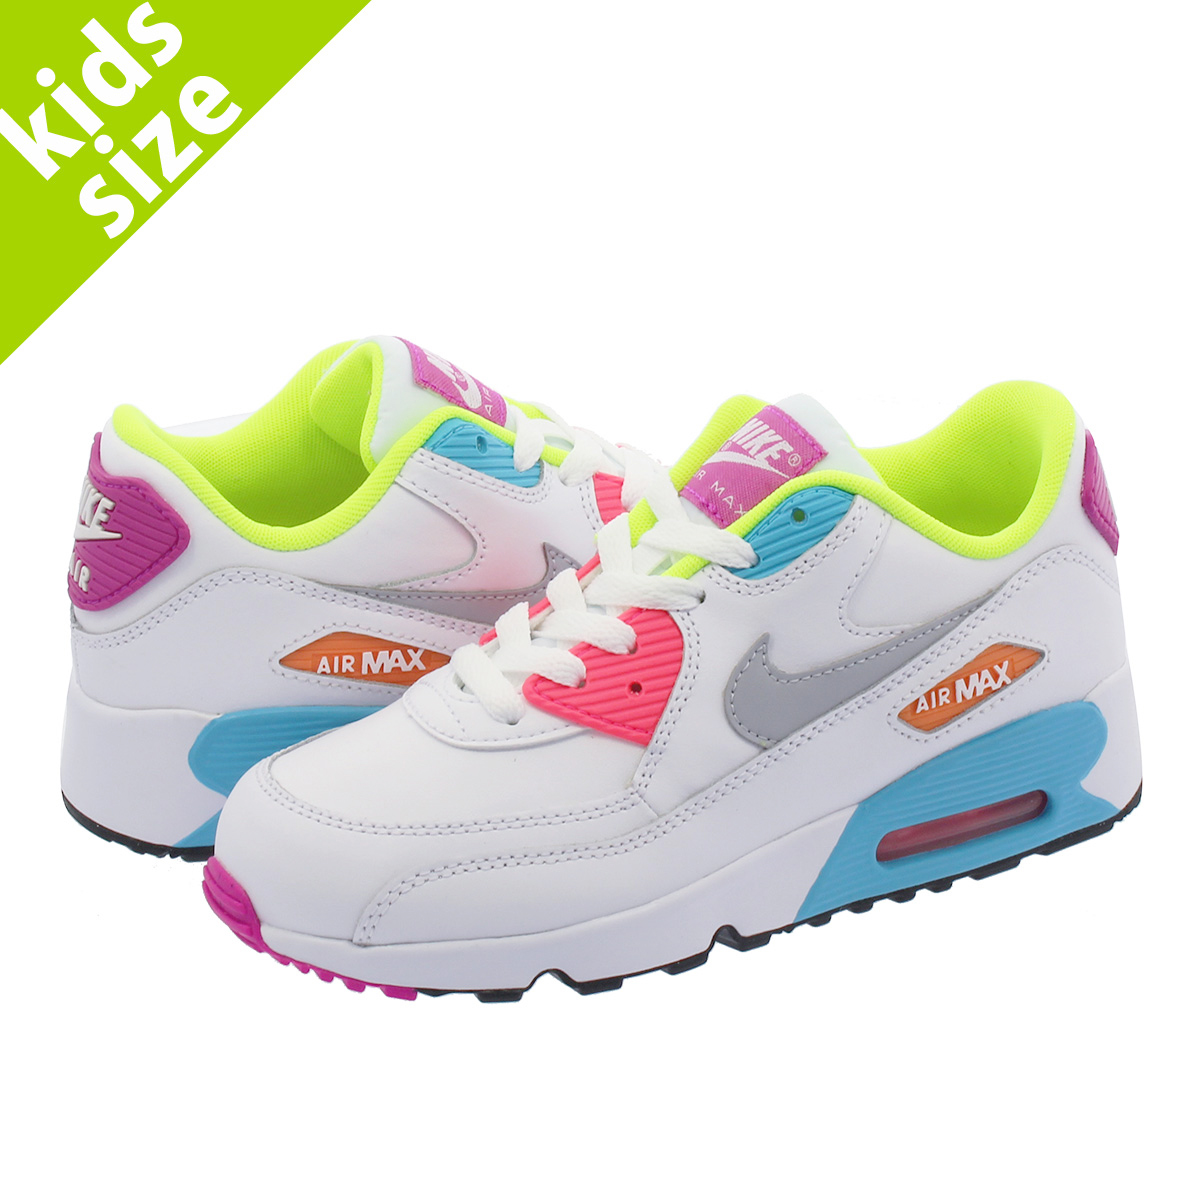 low priced fdf2c f5d71 ... coupon code nike air max 90 leather ps kie ney amax 90 leather ps white  lime